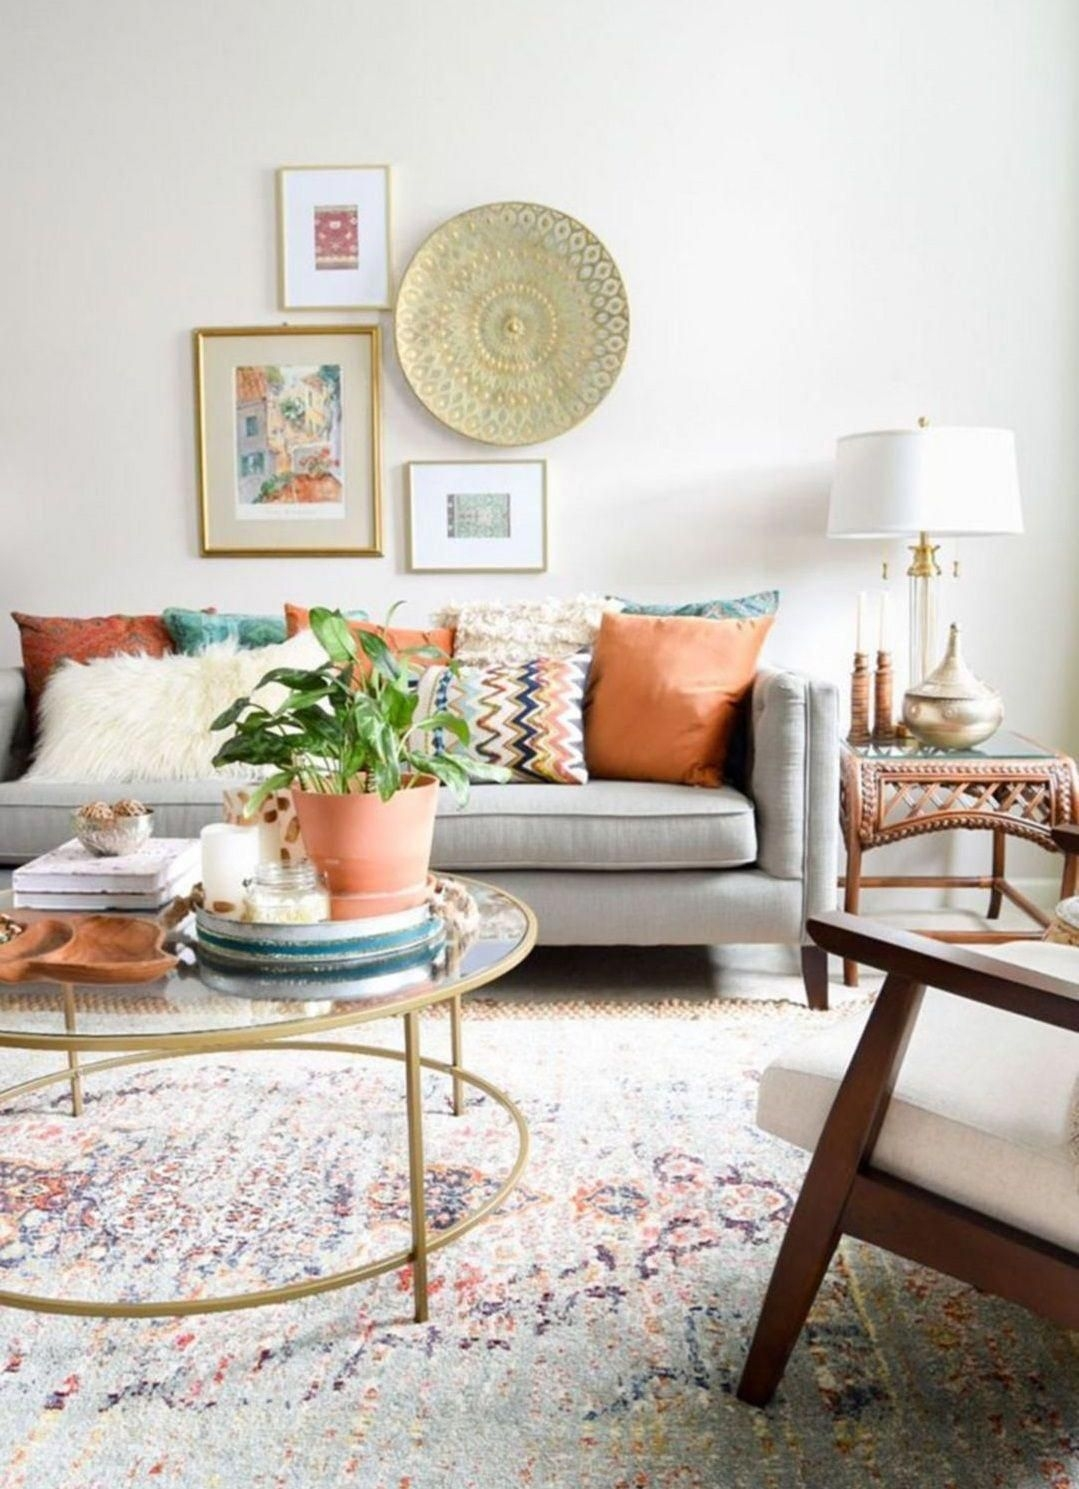 Incredible Boho Home Decor Bohemian Living Room Ideas Bohemian area Rug On Appealing with Little Living Spaces the Challenge is Discovering the On Boho Home Decor Bohemian Living Room Ideas Bohemian area Rug